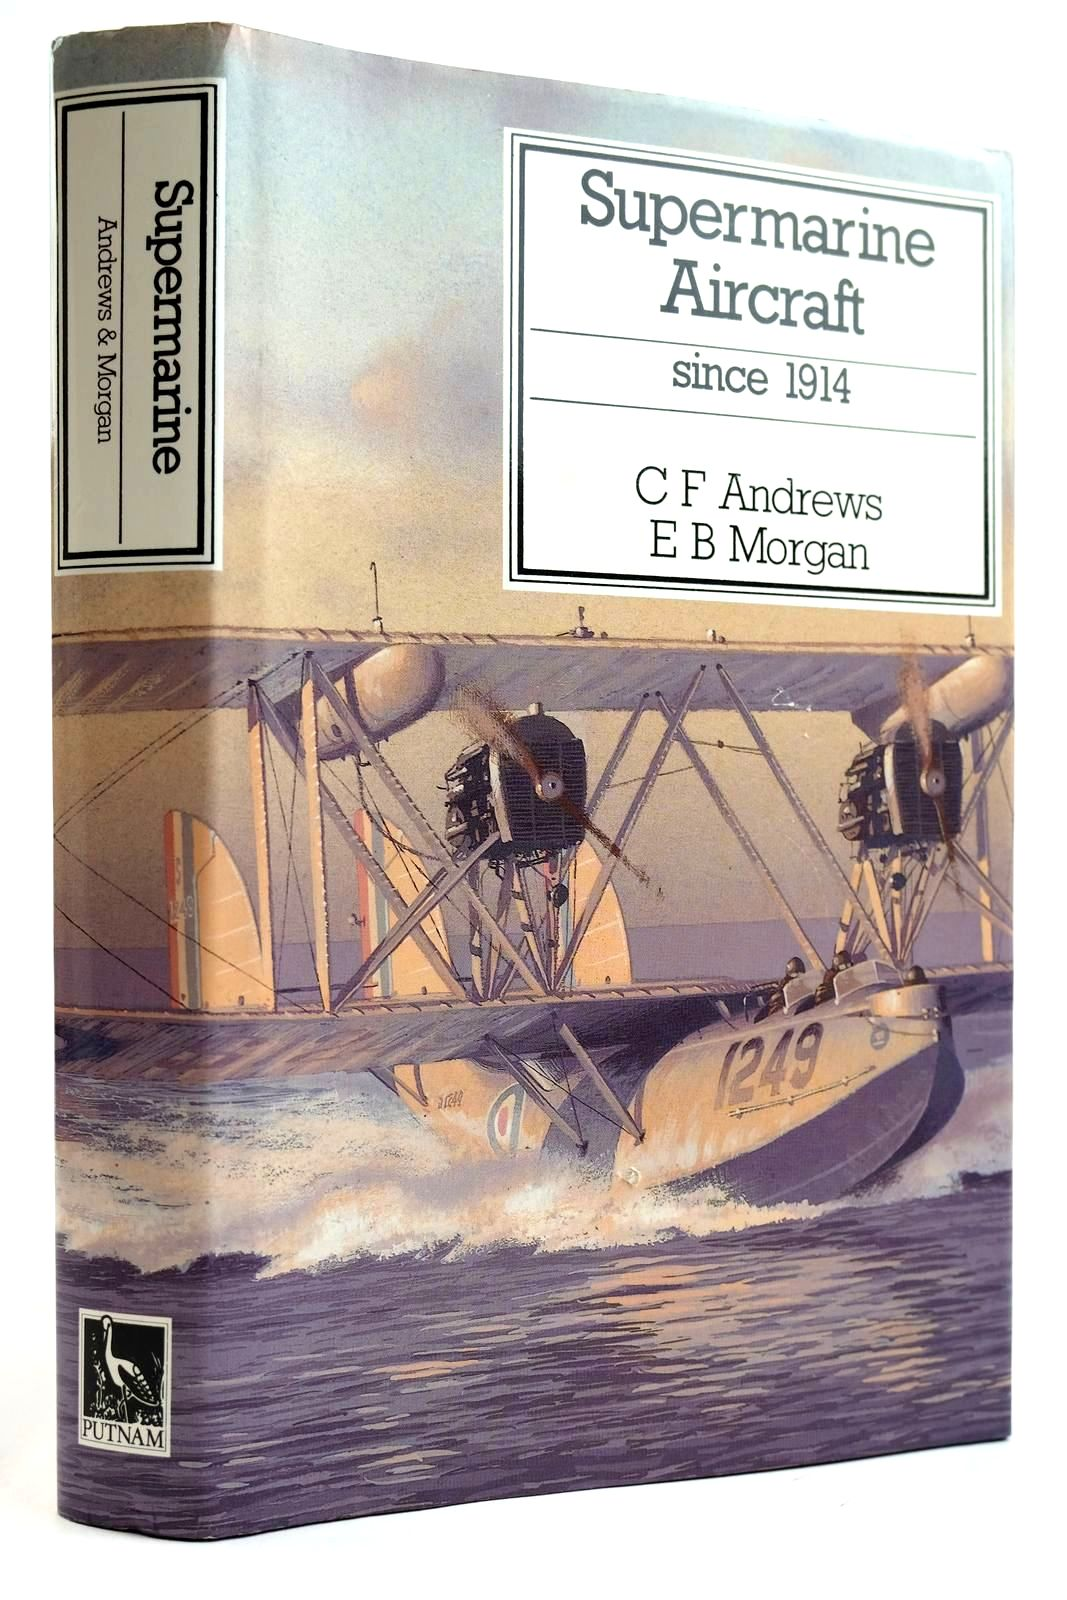 Photo of SUPERMARINE AIRCRAFT SINCE 1914 written by Andrews, C.F. Morgan, E.B. published by Putnam (STOCK CODE: 2132080)  for sale by Stella & Rose's Books